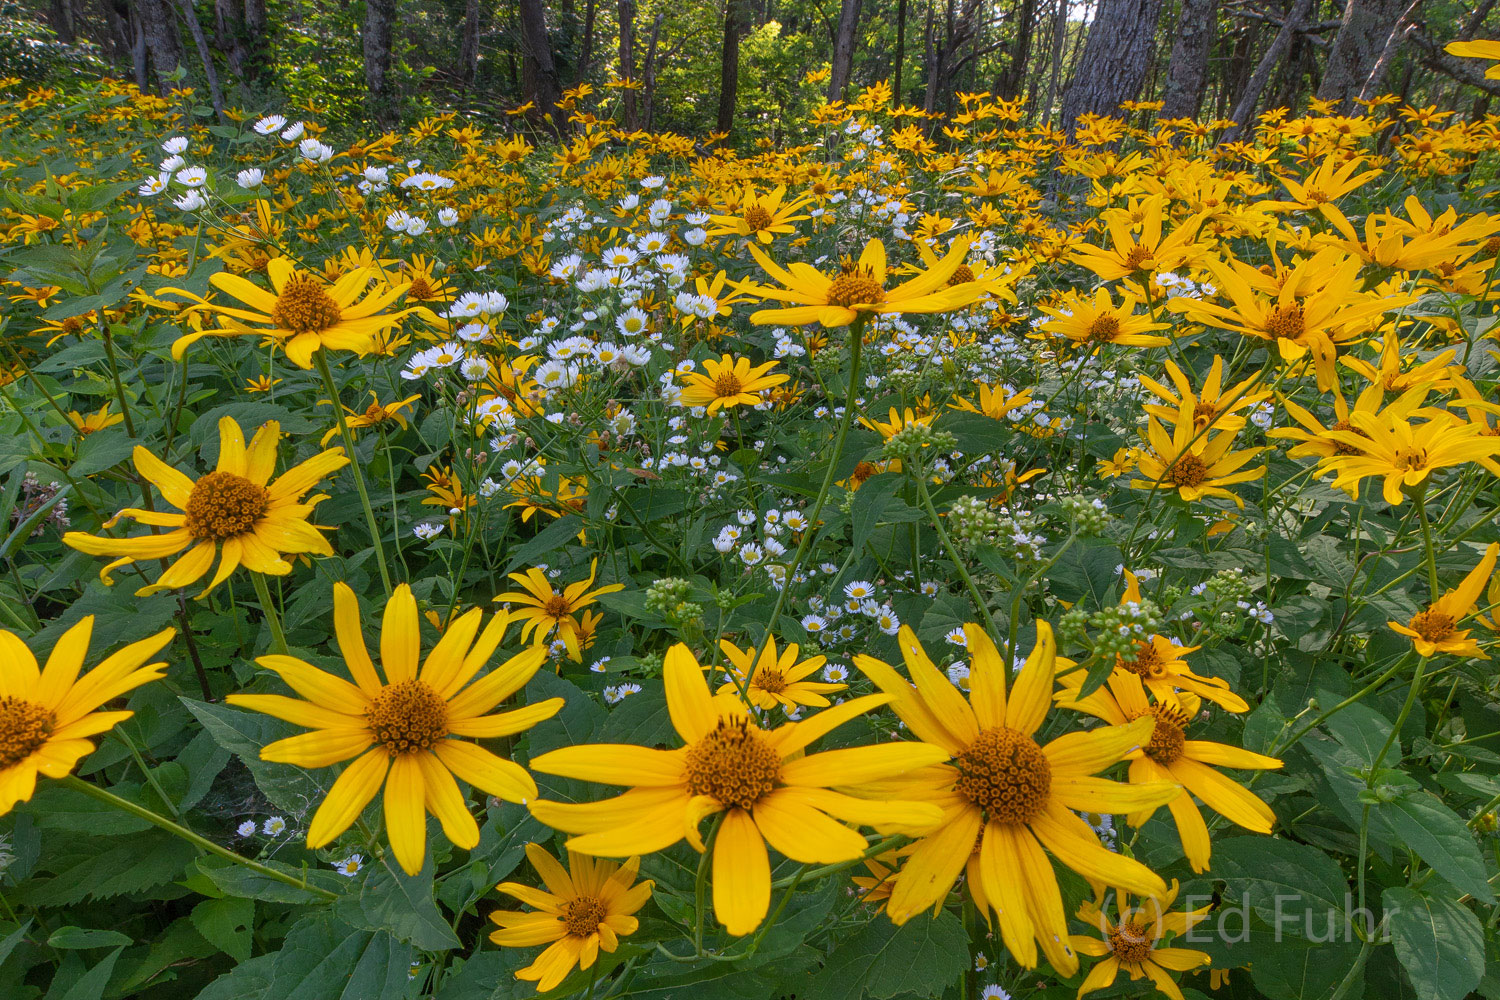 Wildflowers, Shenandoah, Shenandoah national park, wildflower, photography, image, skyline drive summer, photo